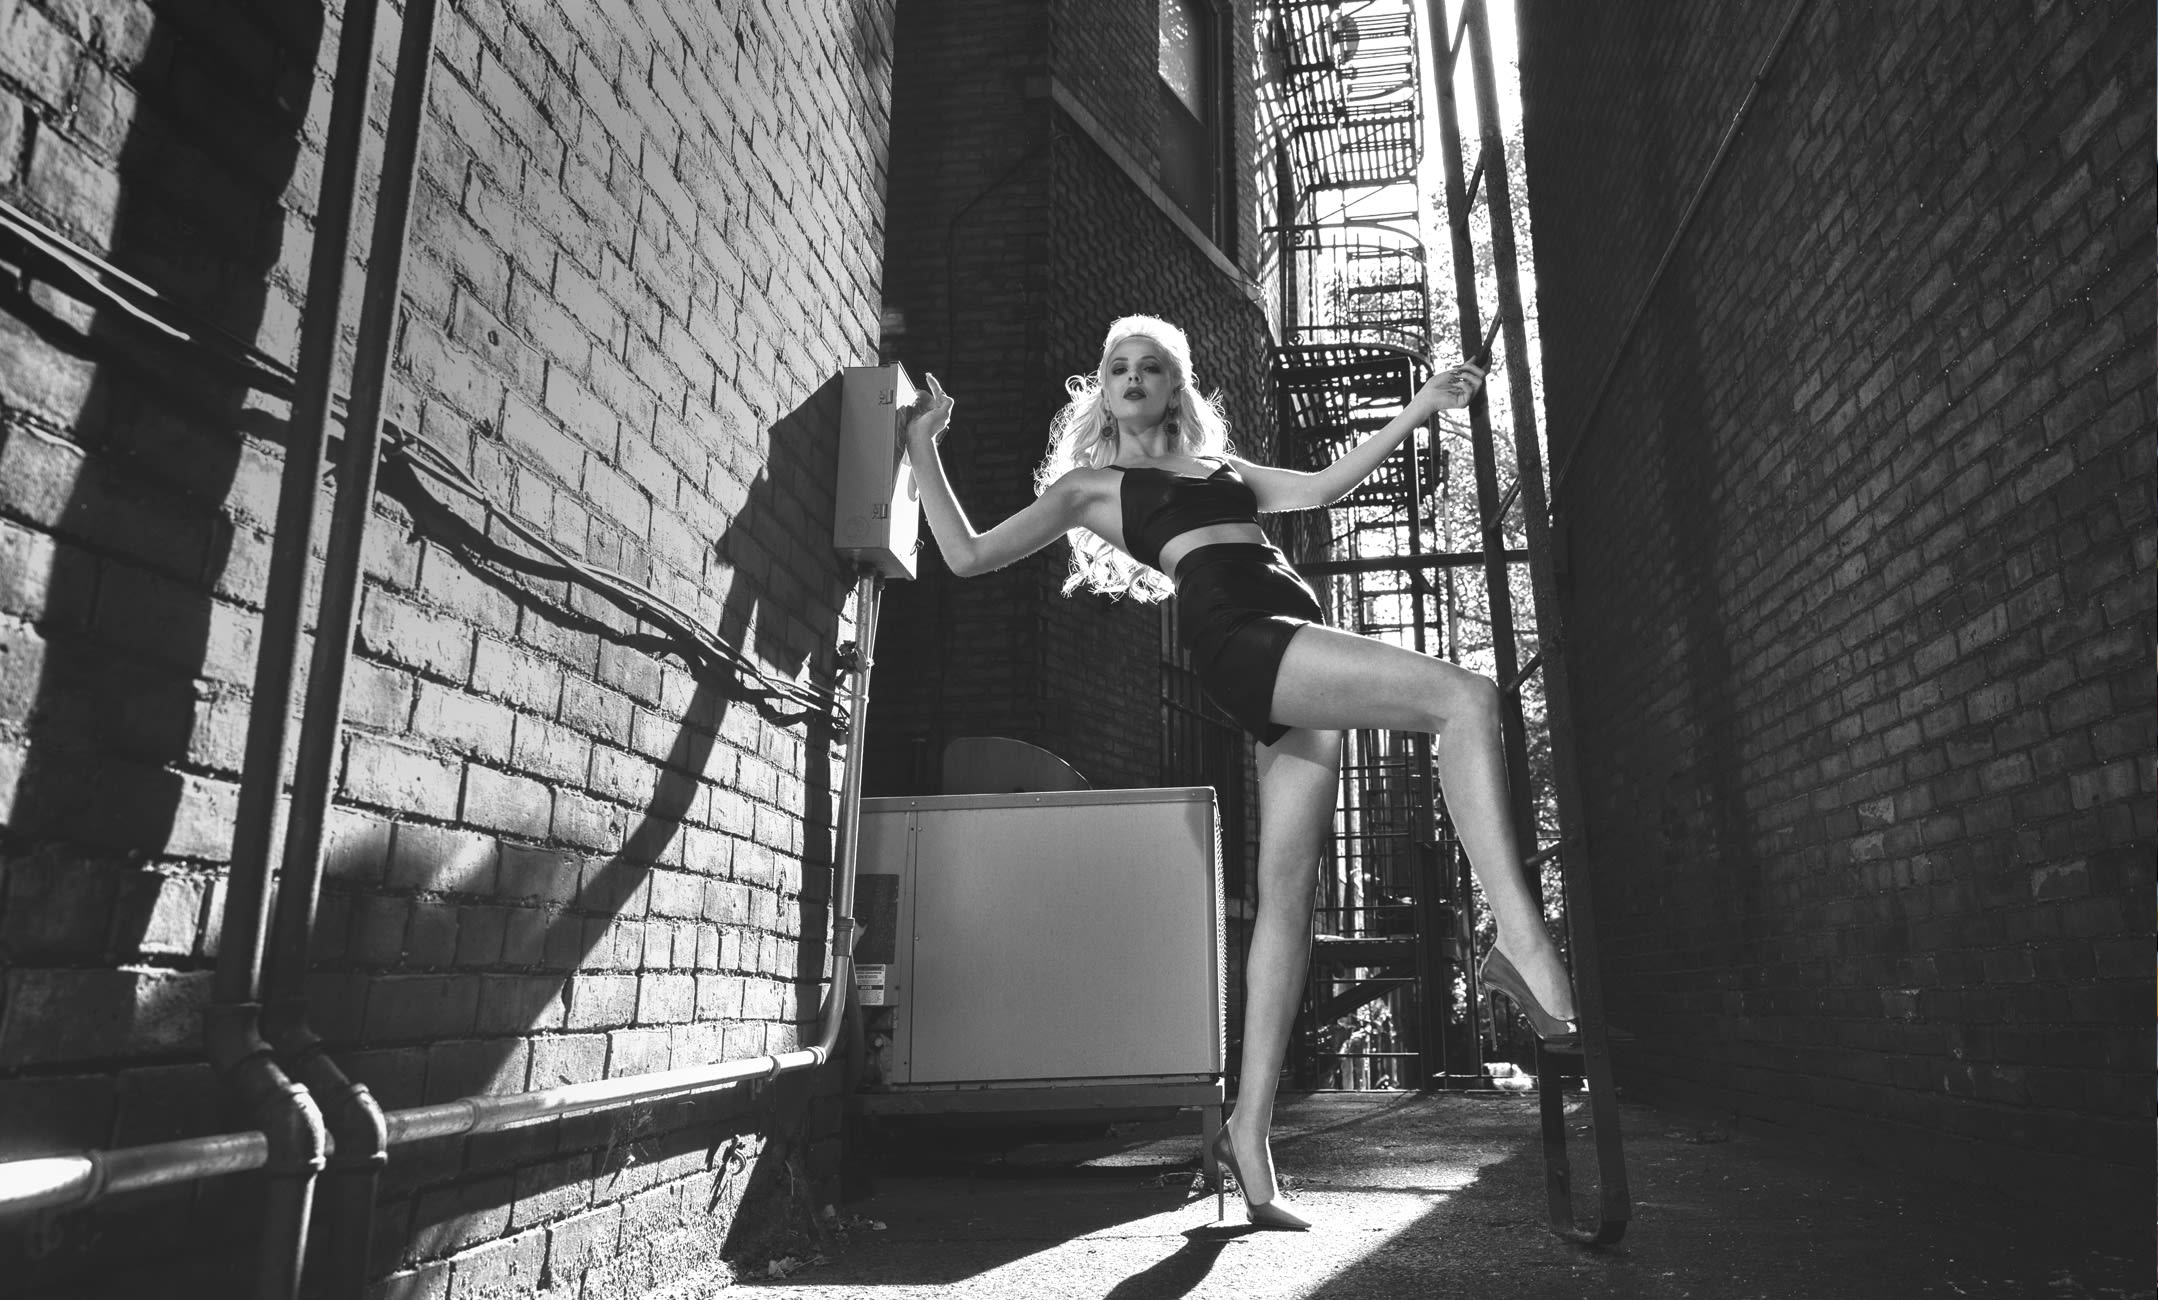 model posing in building alley